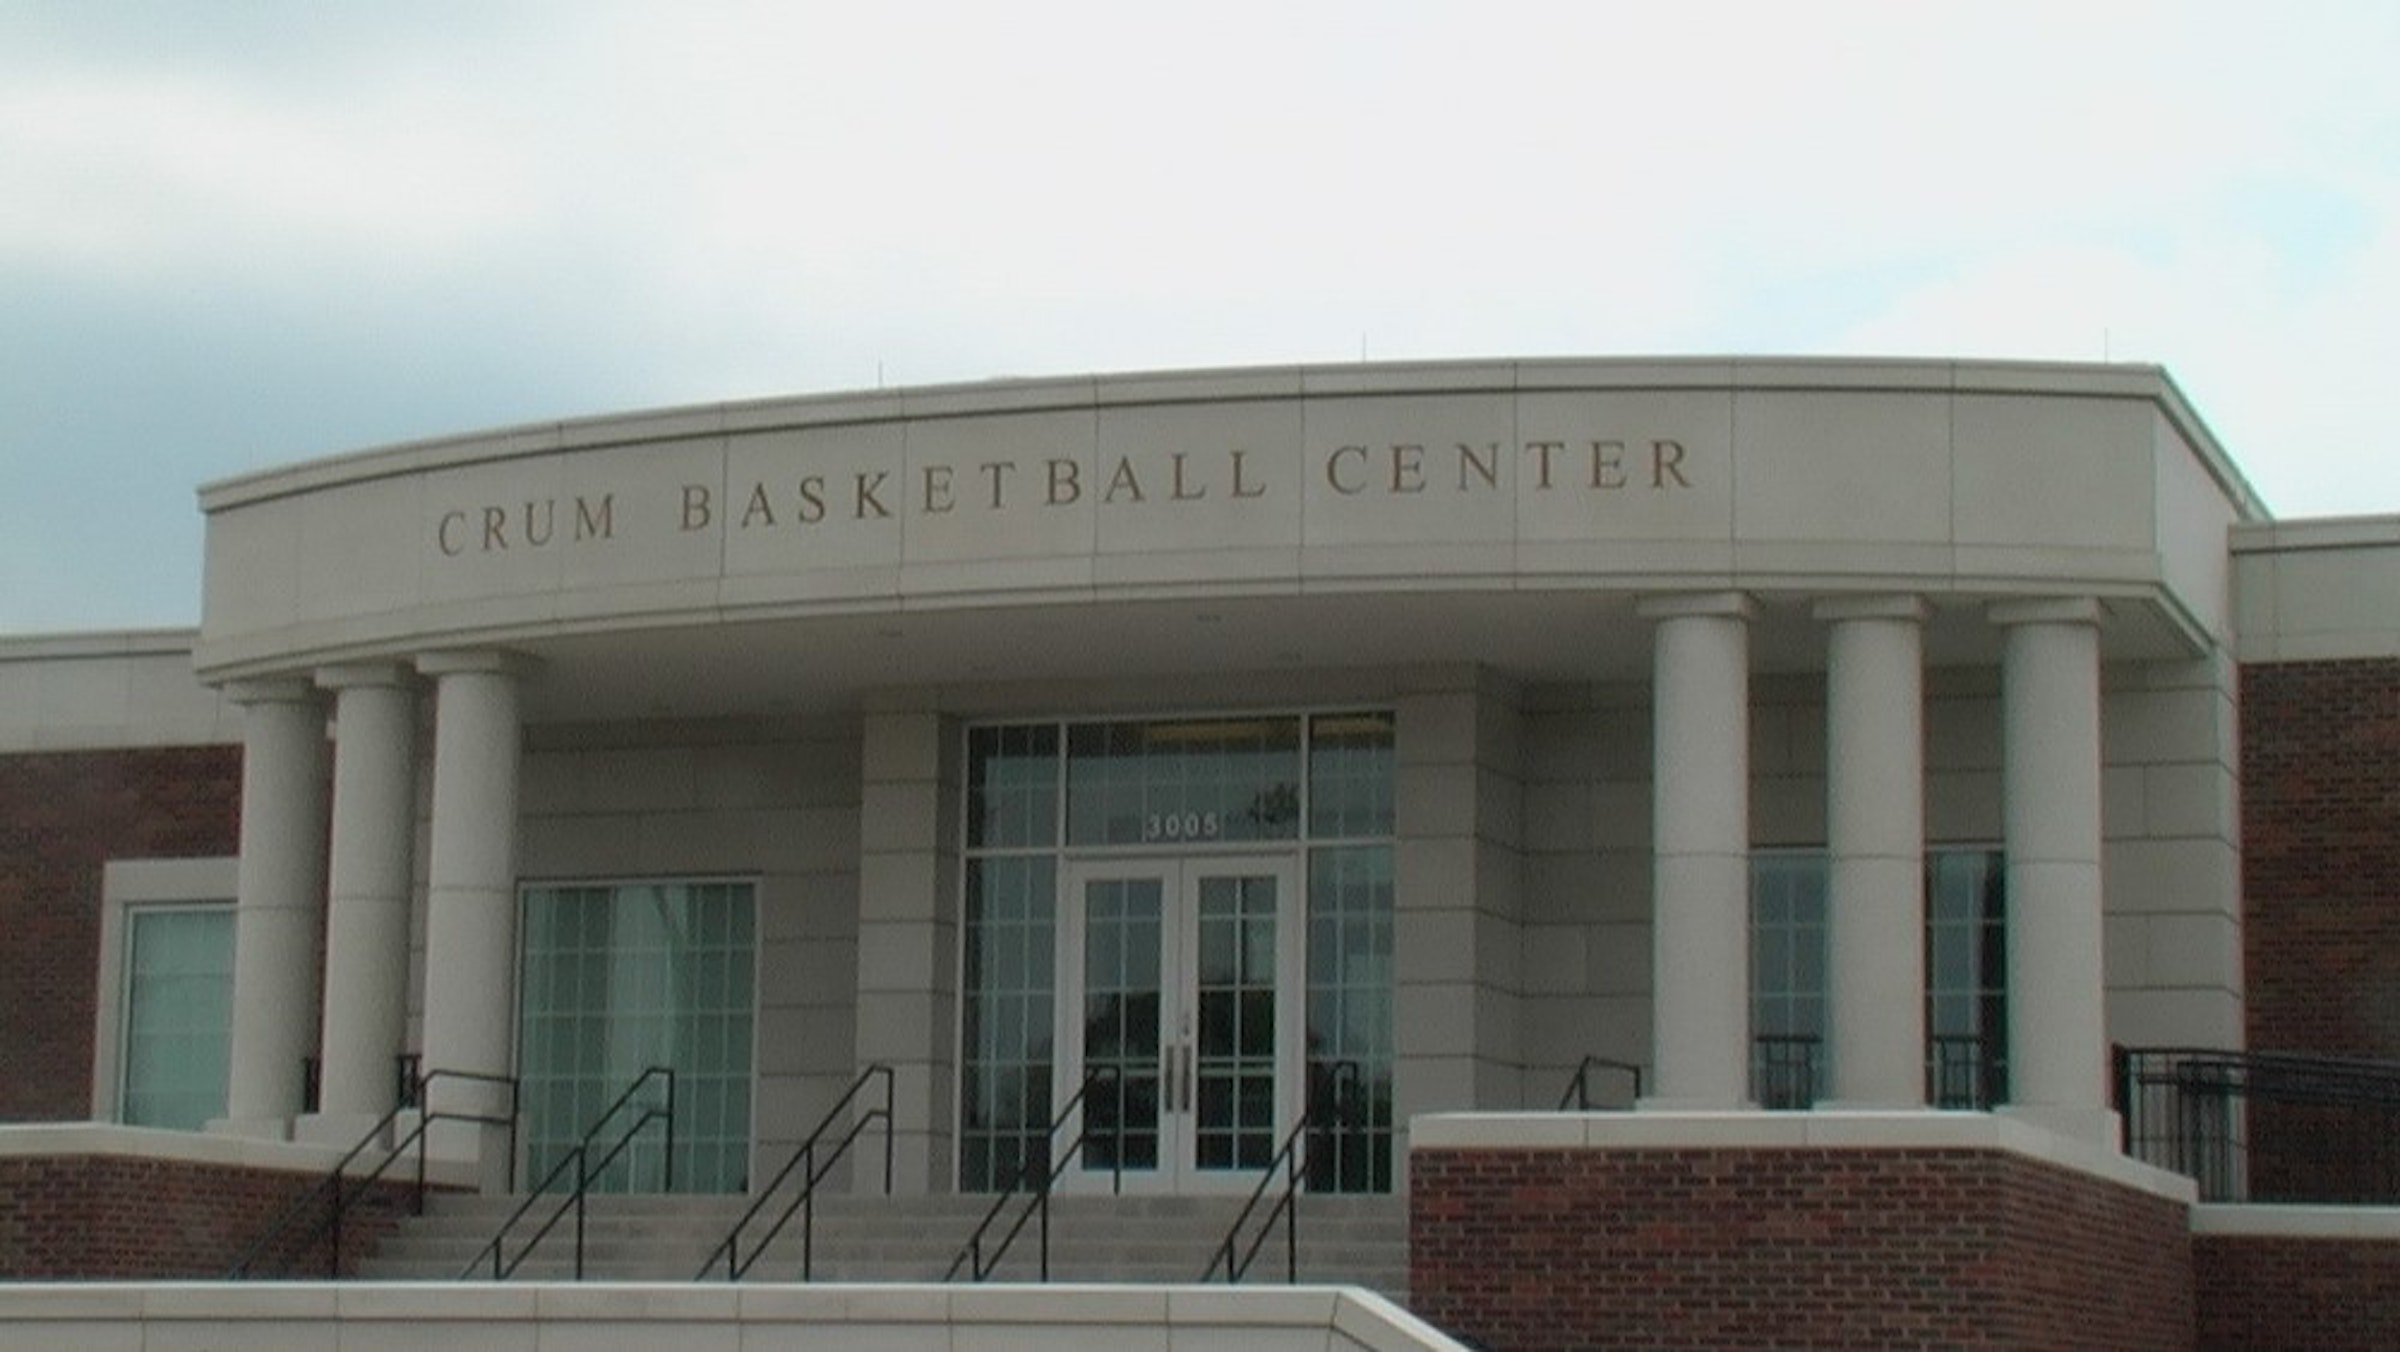 SMU - Crum Basketball Center